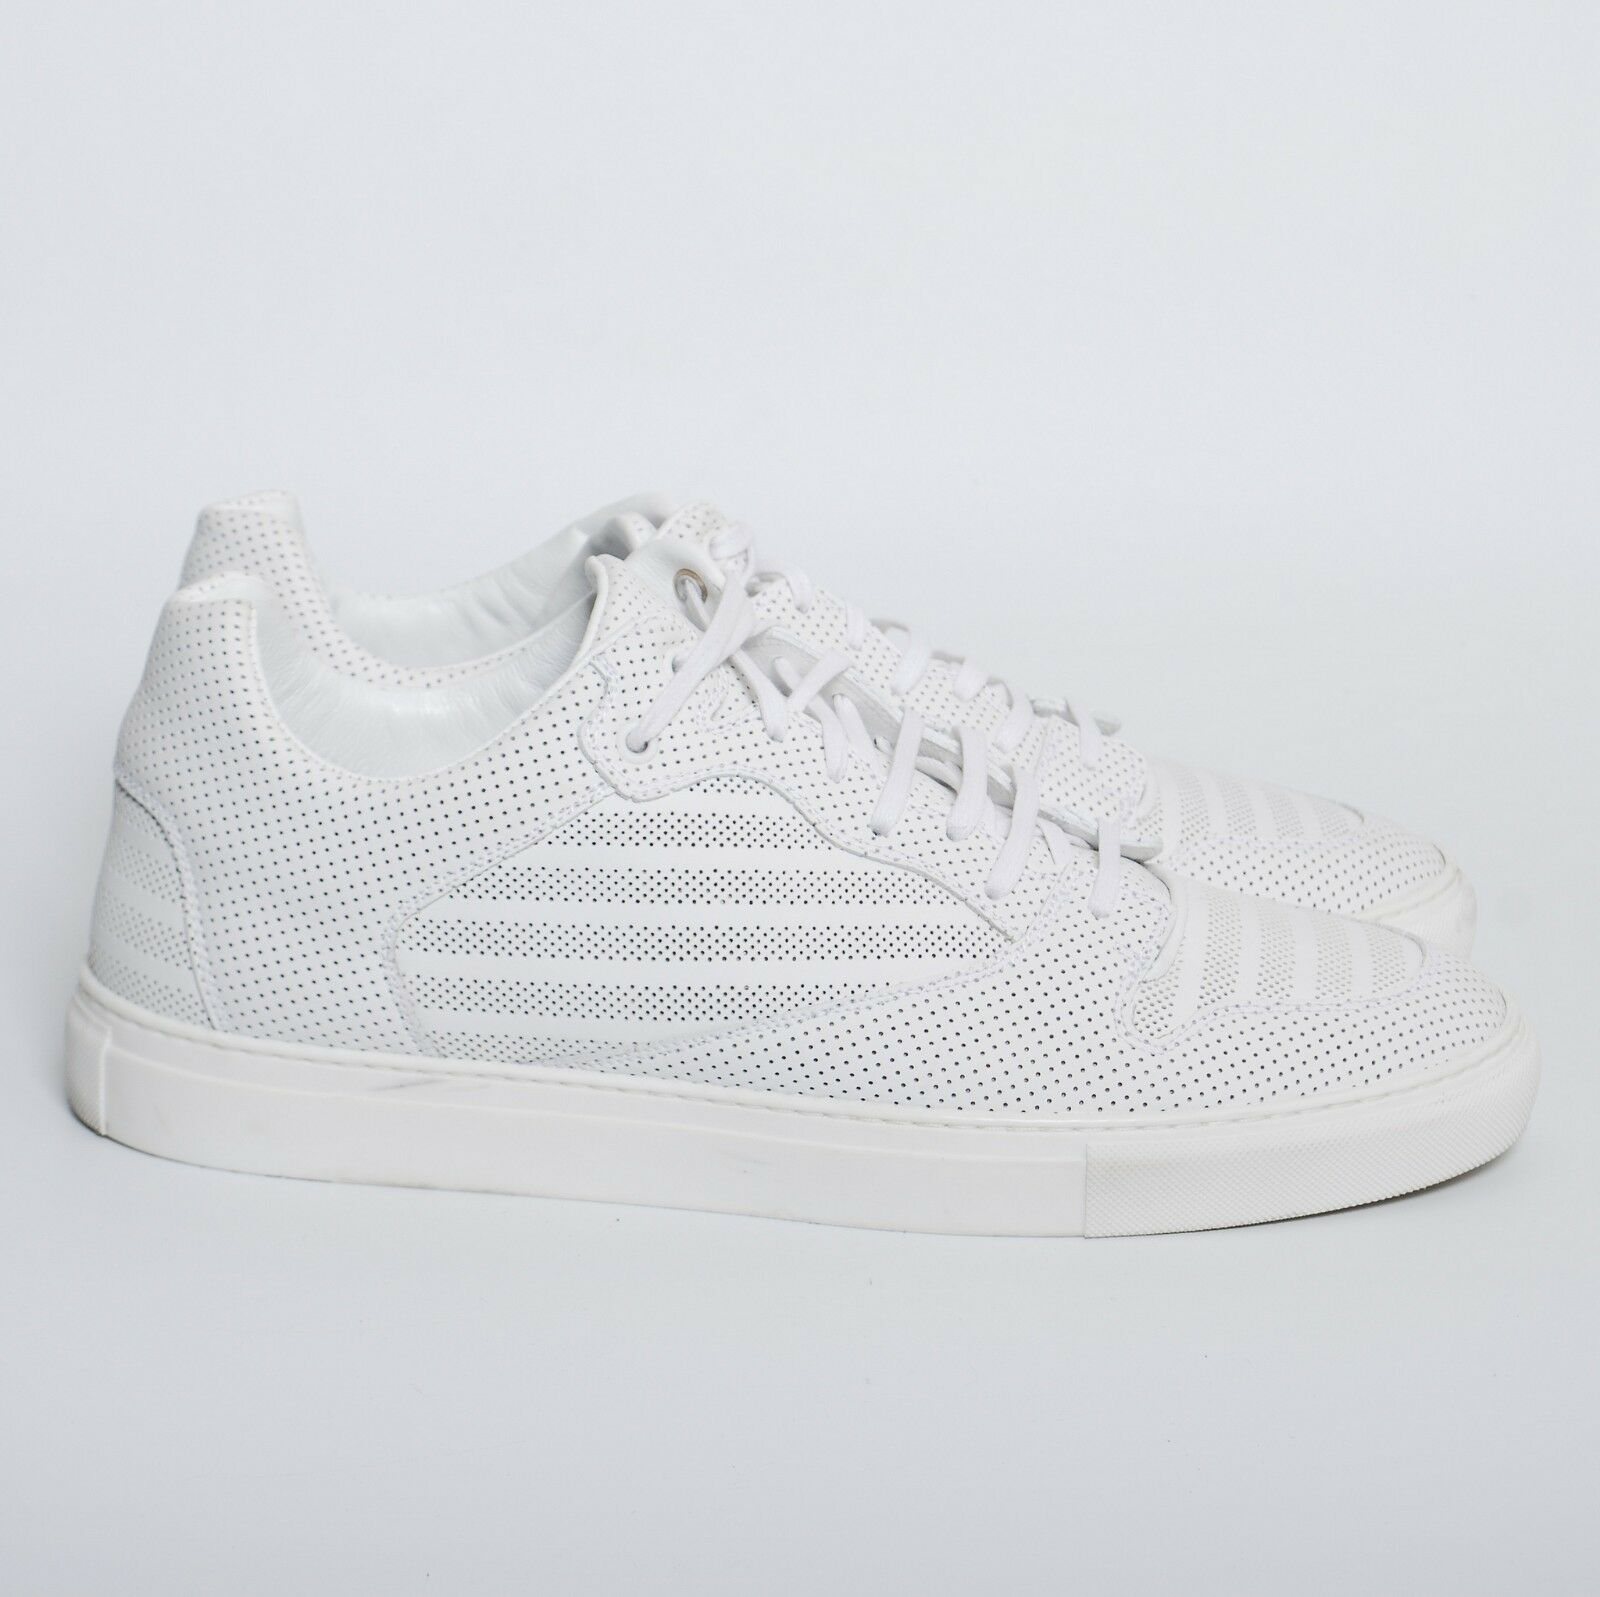 BALENCIAGA Men White Leather Low Top Sneakers Lace Up Athletic Trainers US 13